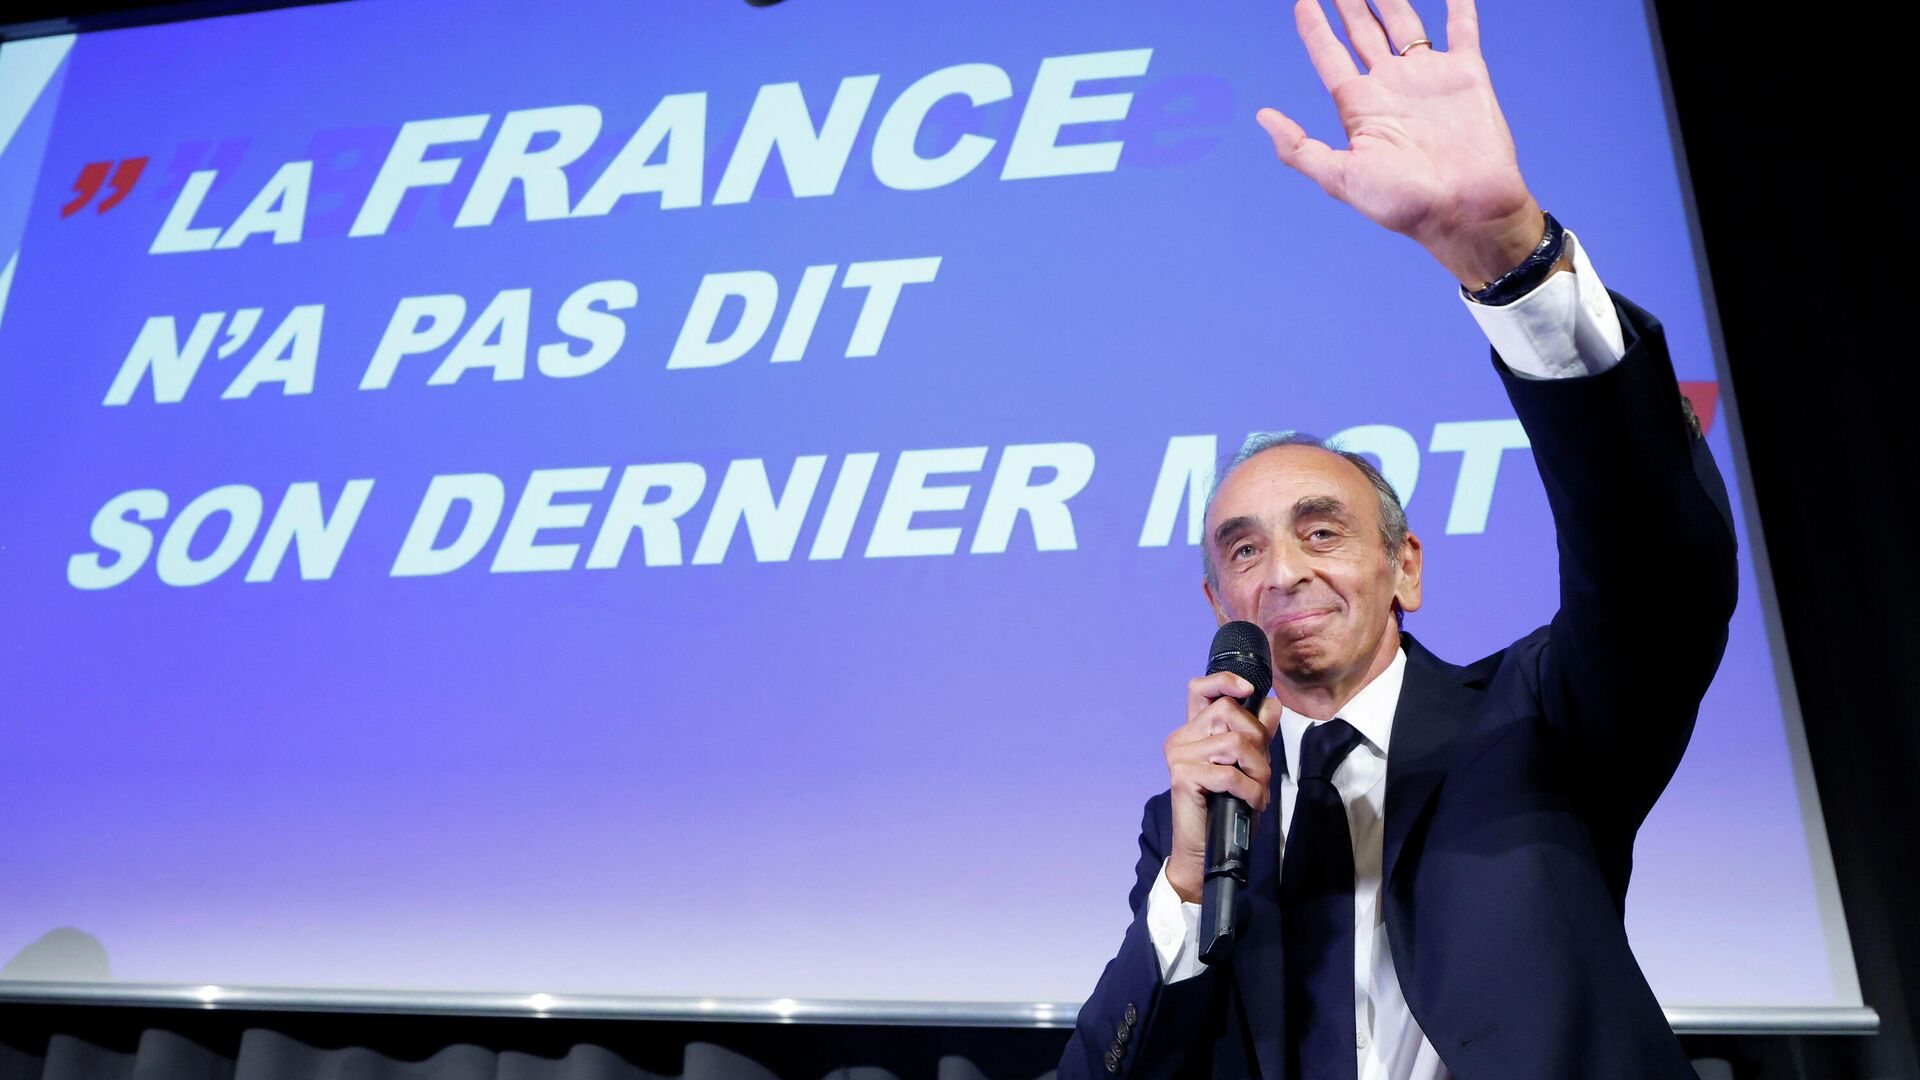 Far-right French commentator Eric Zemmour attends a meeting for the promotion of his new book La France n'a pas dit son dernier mot (France has not yet said its last word) in Nice, France, September 18, 2021. - Sputnik International, 1920, 27.09.2021